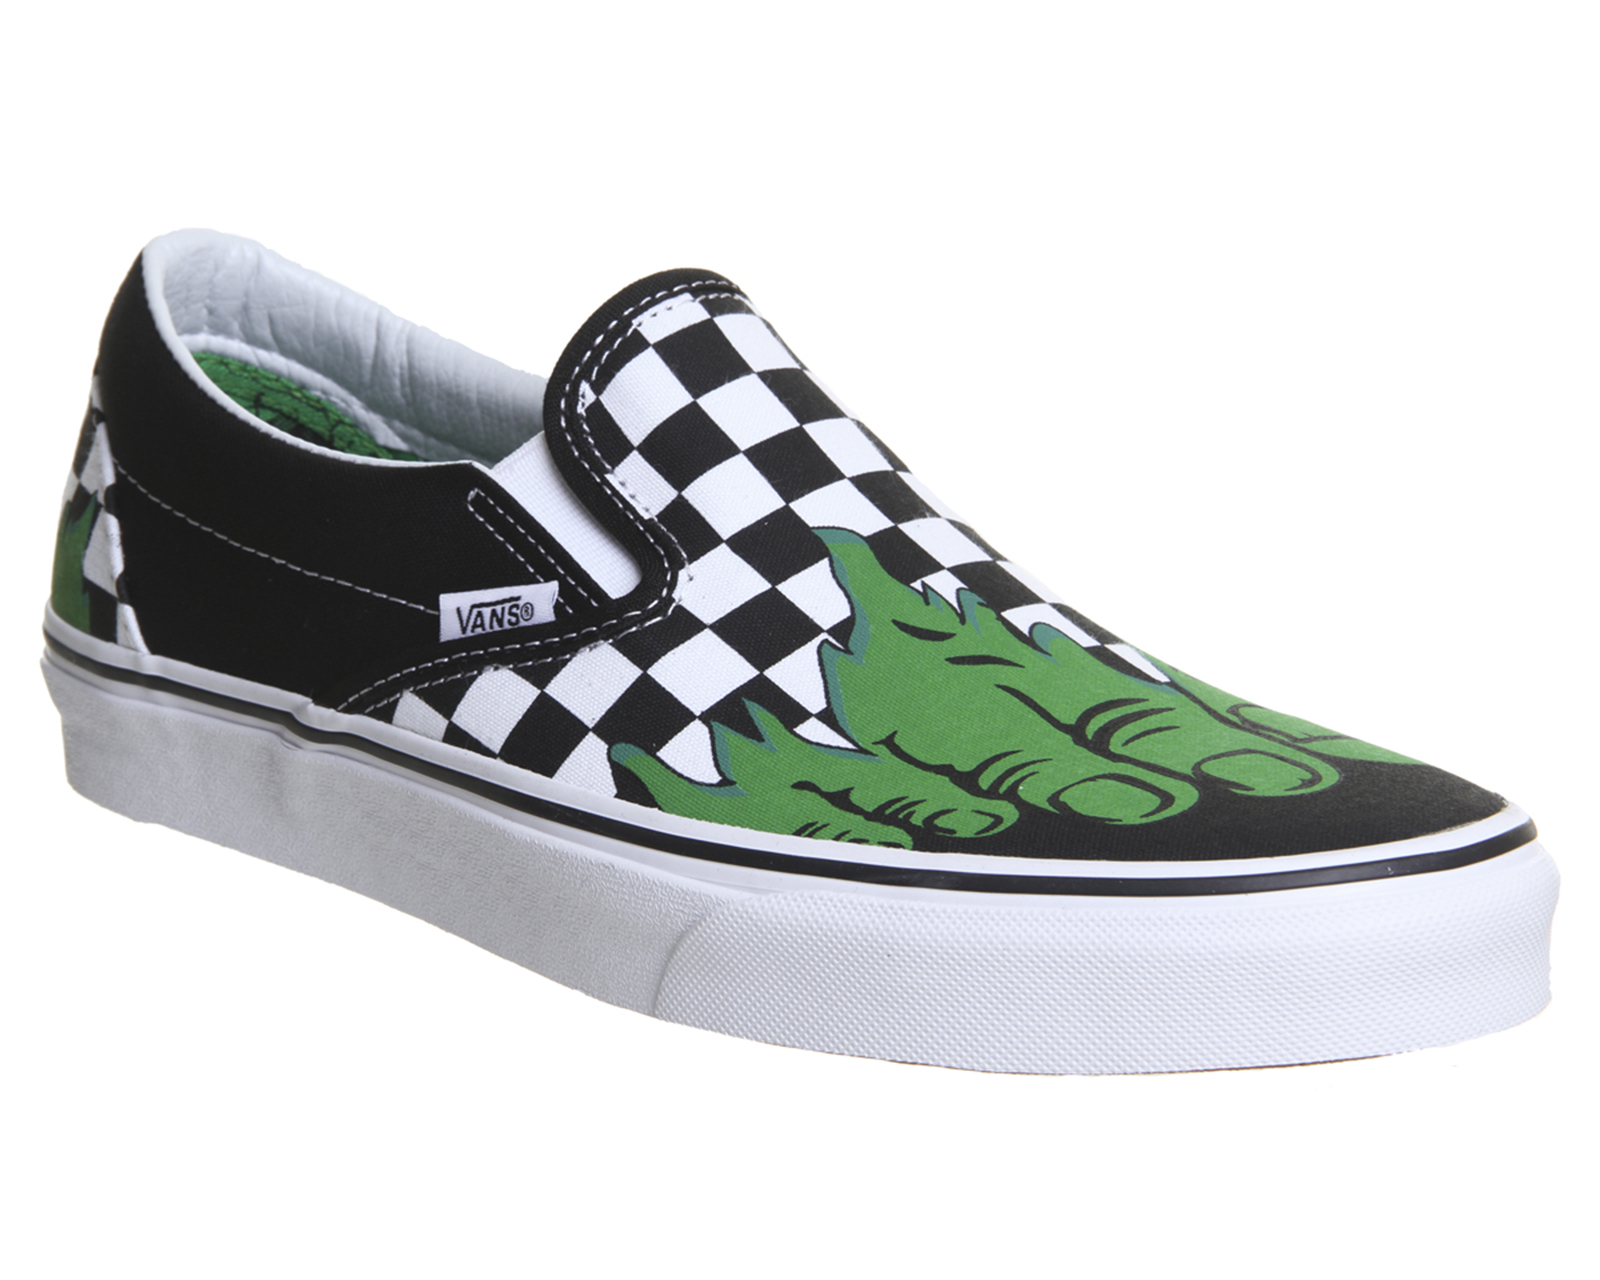 bab2c04ee5ede7 Sentinel Mens Vans Vans Classic Slip On Trainers Hulk Checkerboard Marvel  Trainers Shoes